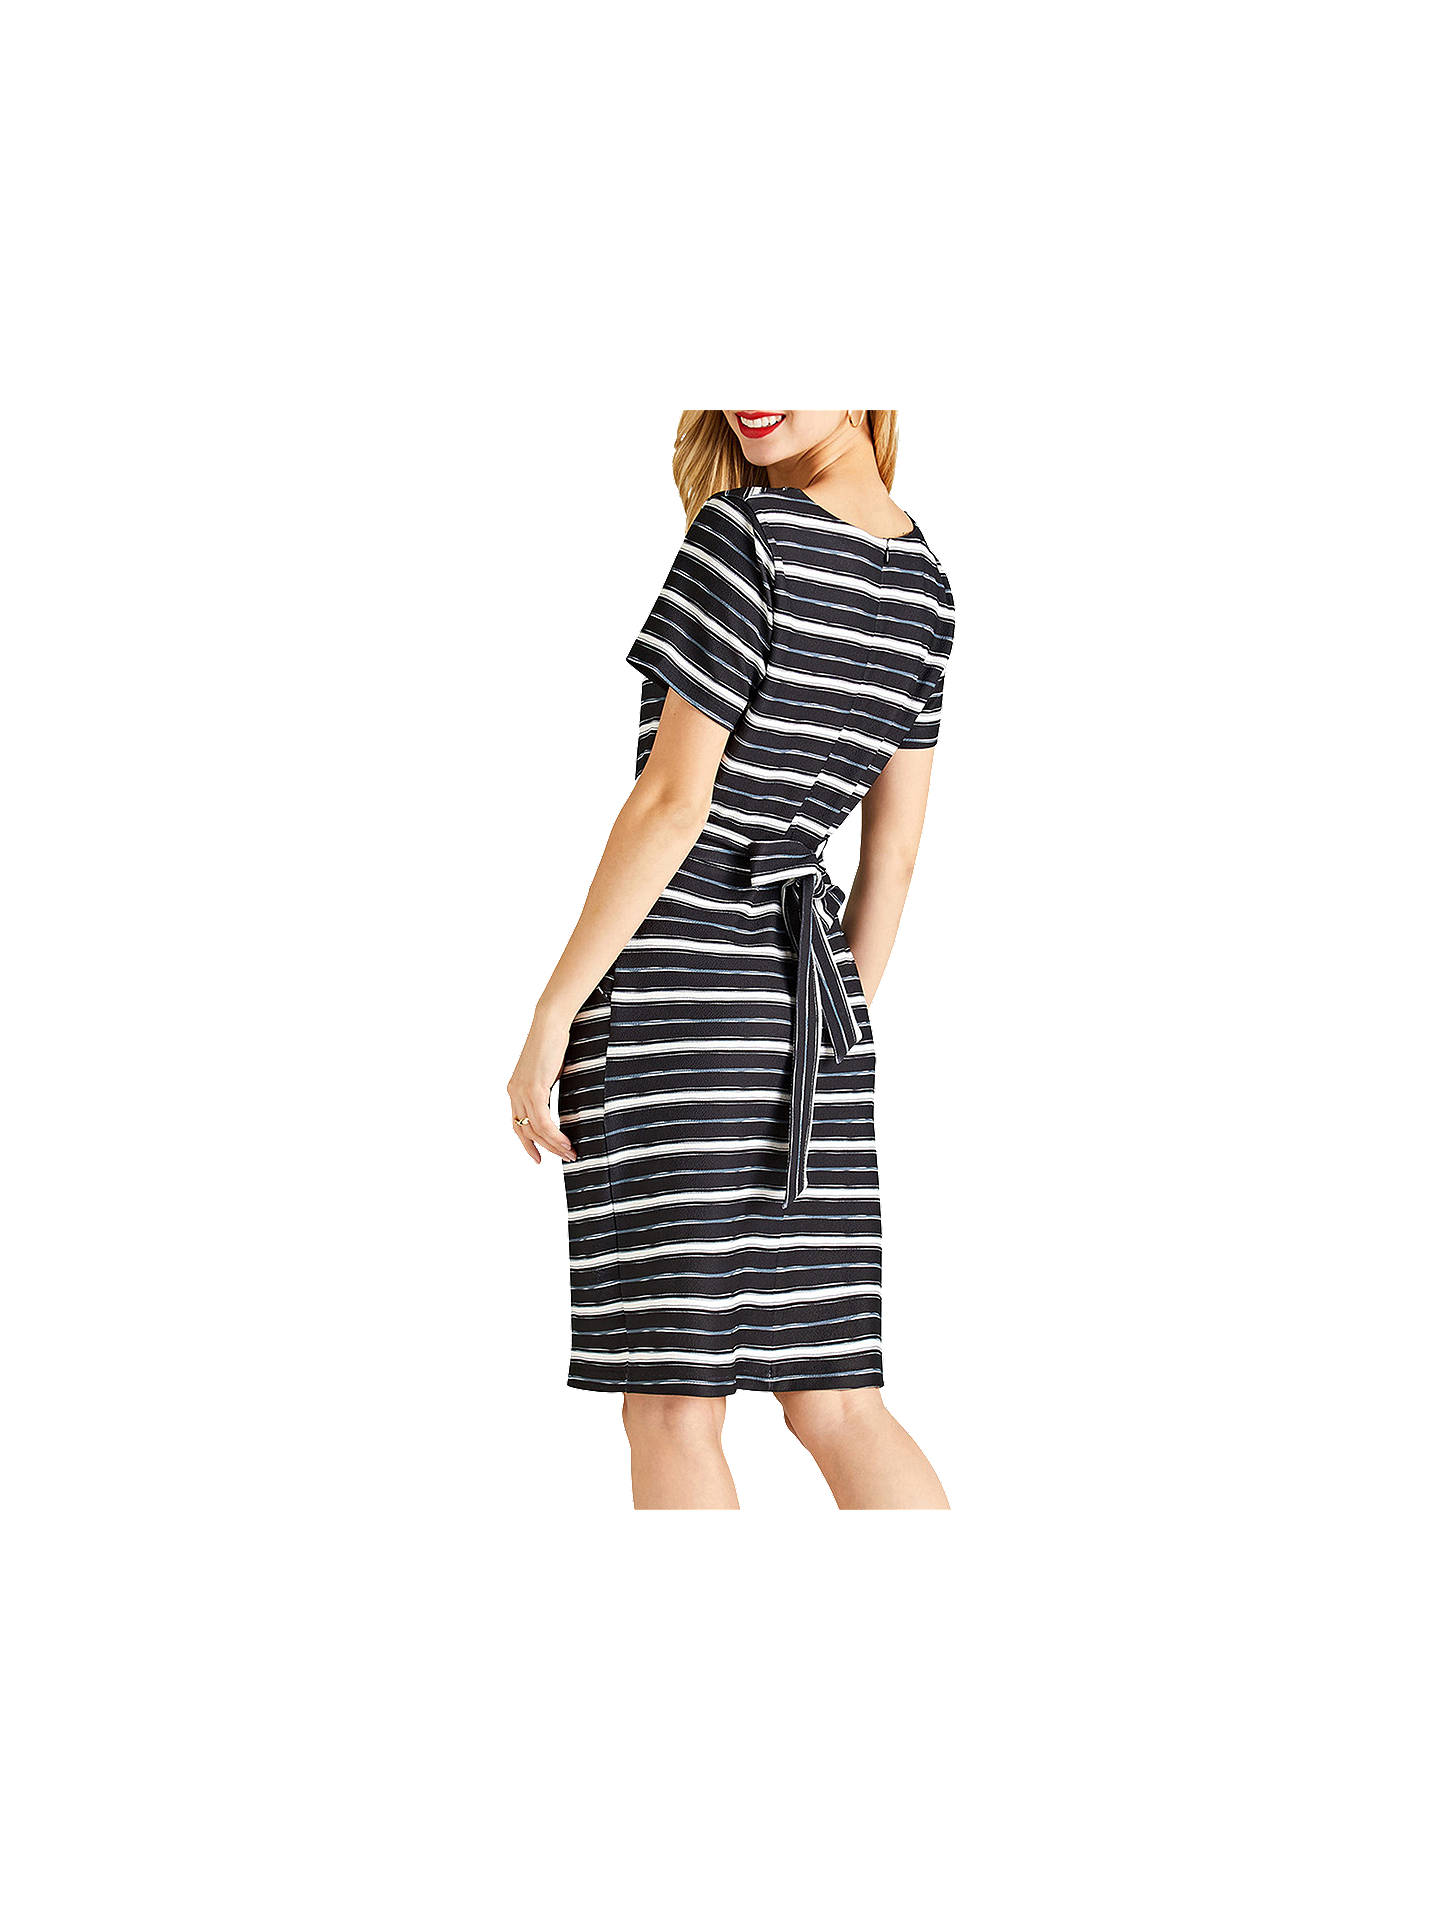 BuyYumi Striped Tulip Dress, Black, 8 Online at johnlewis.com